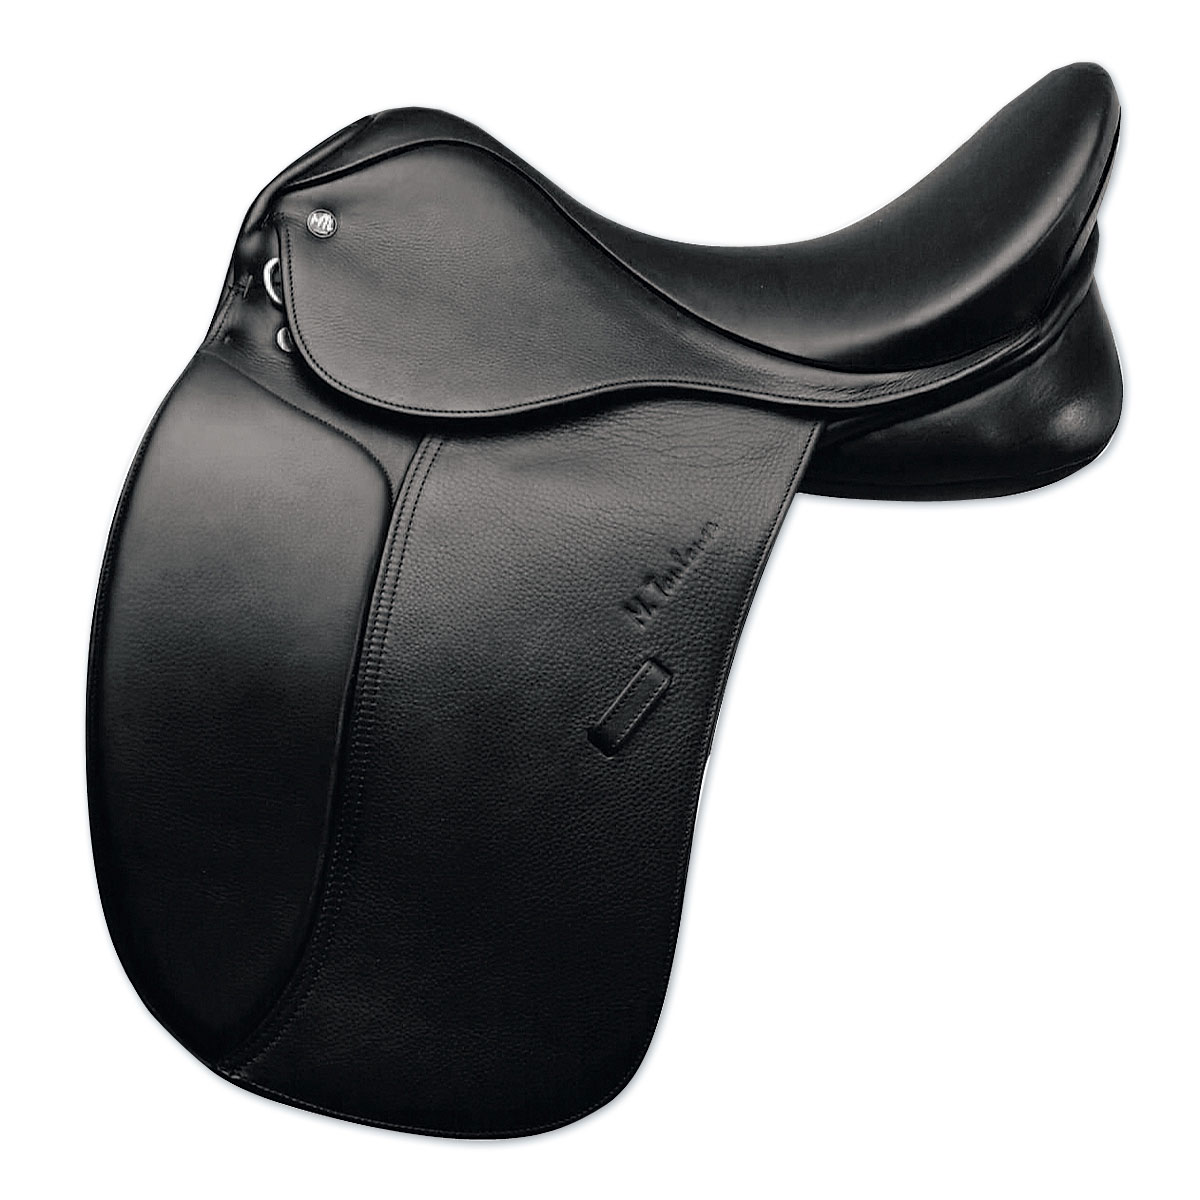 M. Toulouse Aachen Dressage Saddle with Genesis System